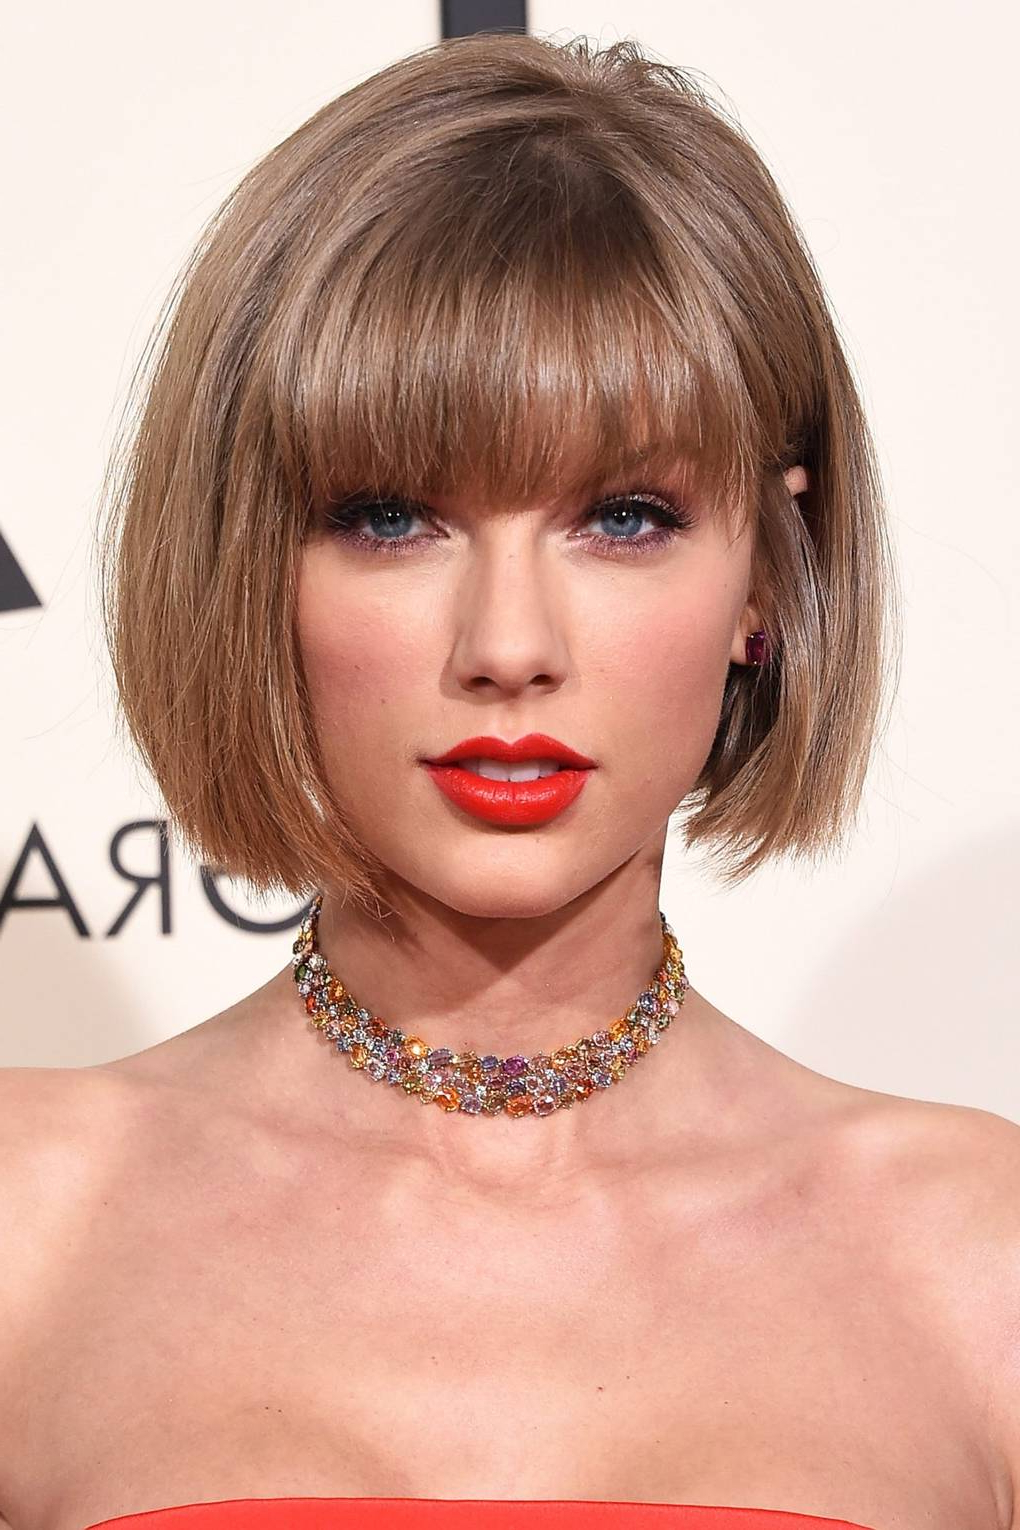 Taylor Swift Hair & Make Up Ideas – Hair Style & Beauty Pictures With Regard To Short Hairstyles With Flicks (View 18 of 20)